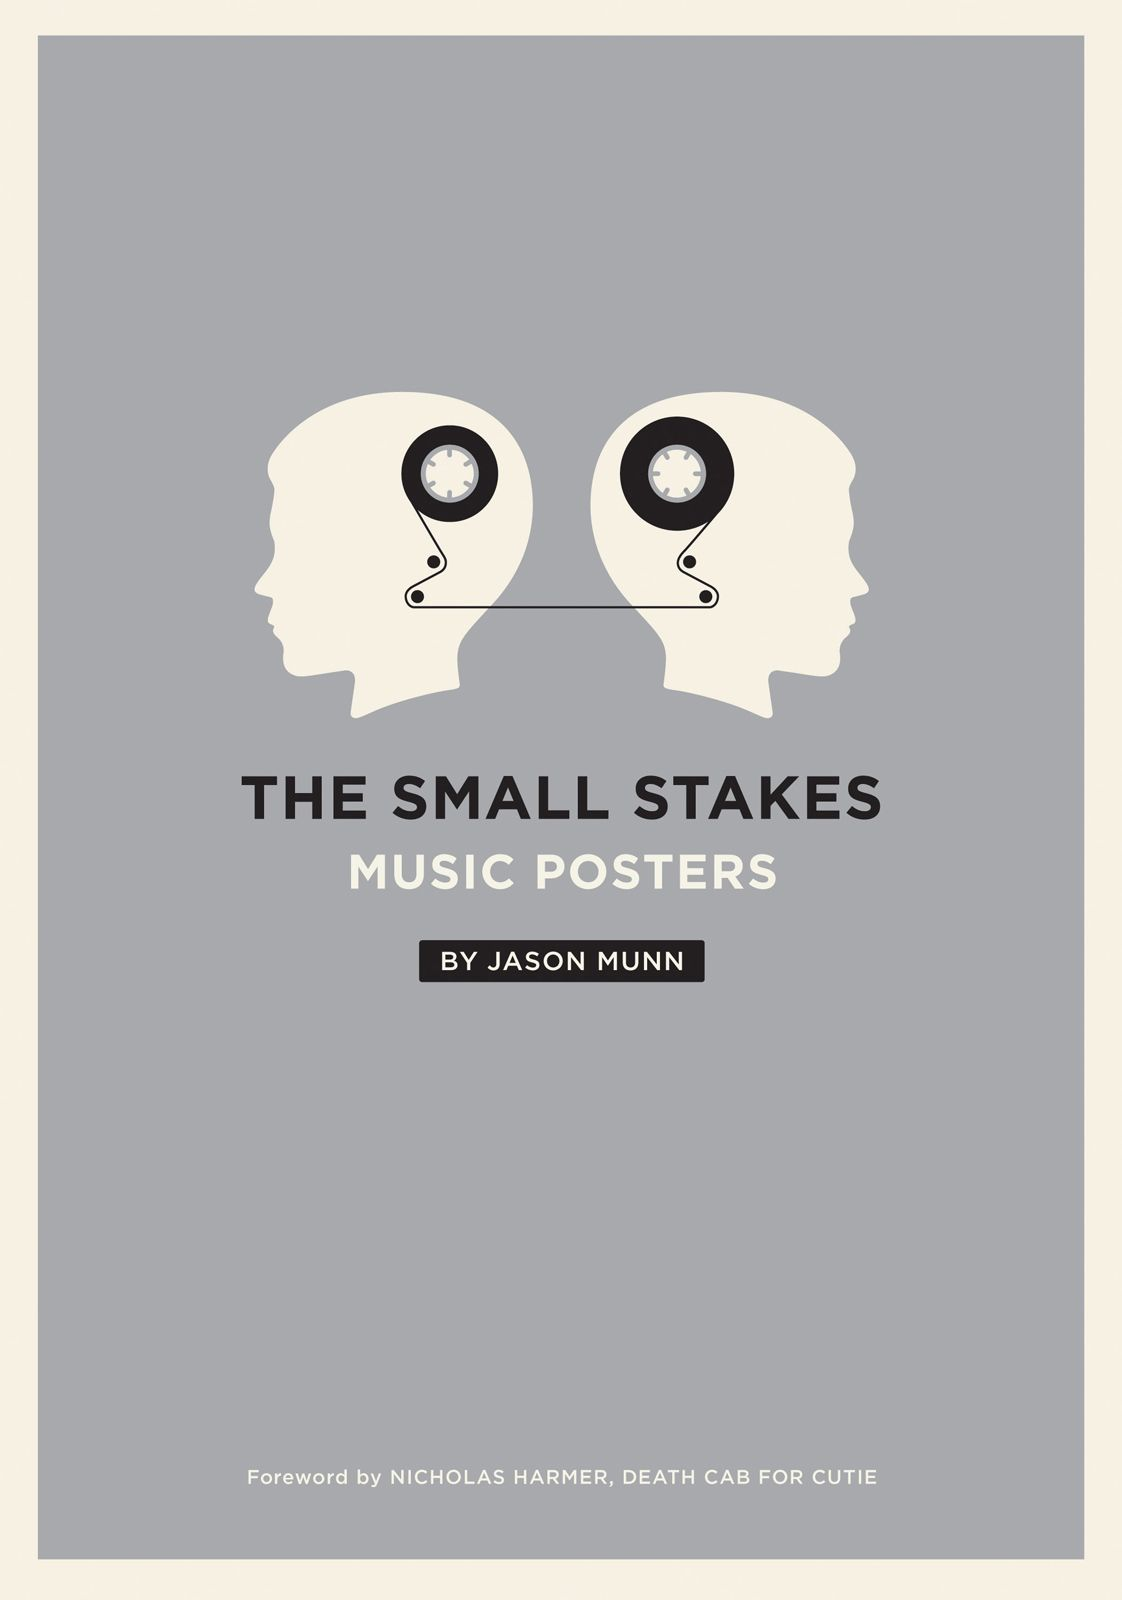 The Small Stakes Music Posters By Miyoko Ohtake Graphic Design Posters Jason Munn Music Poster